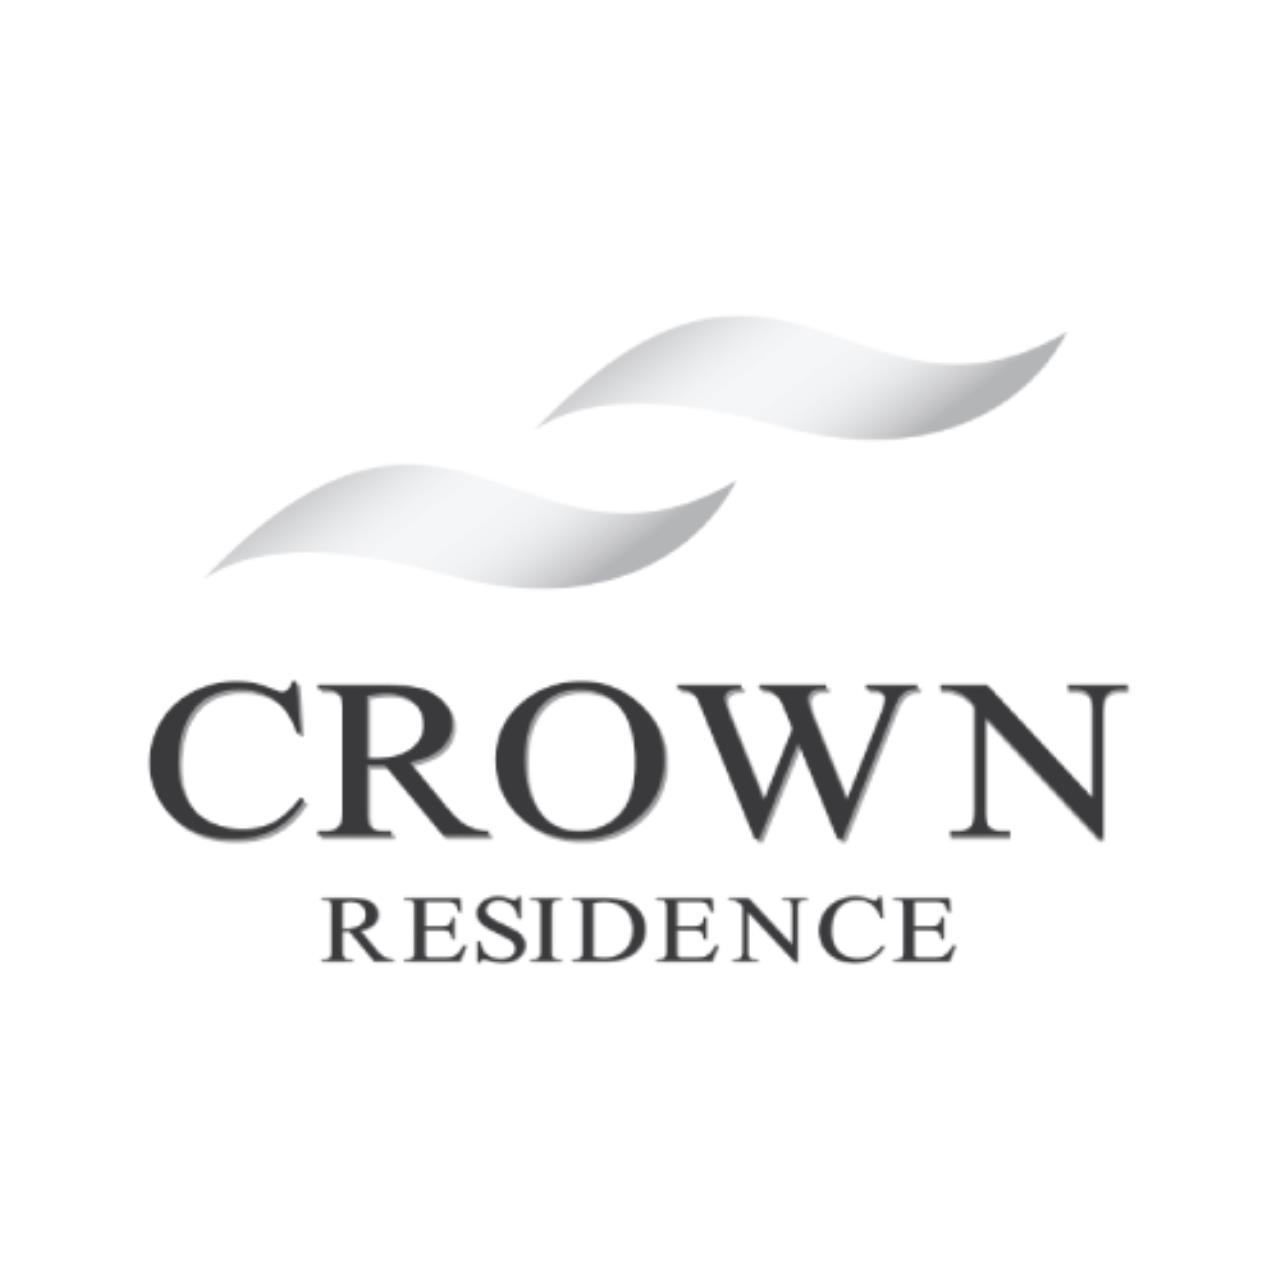 Crown Residence logo